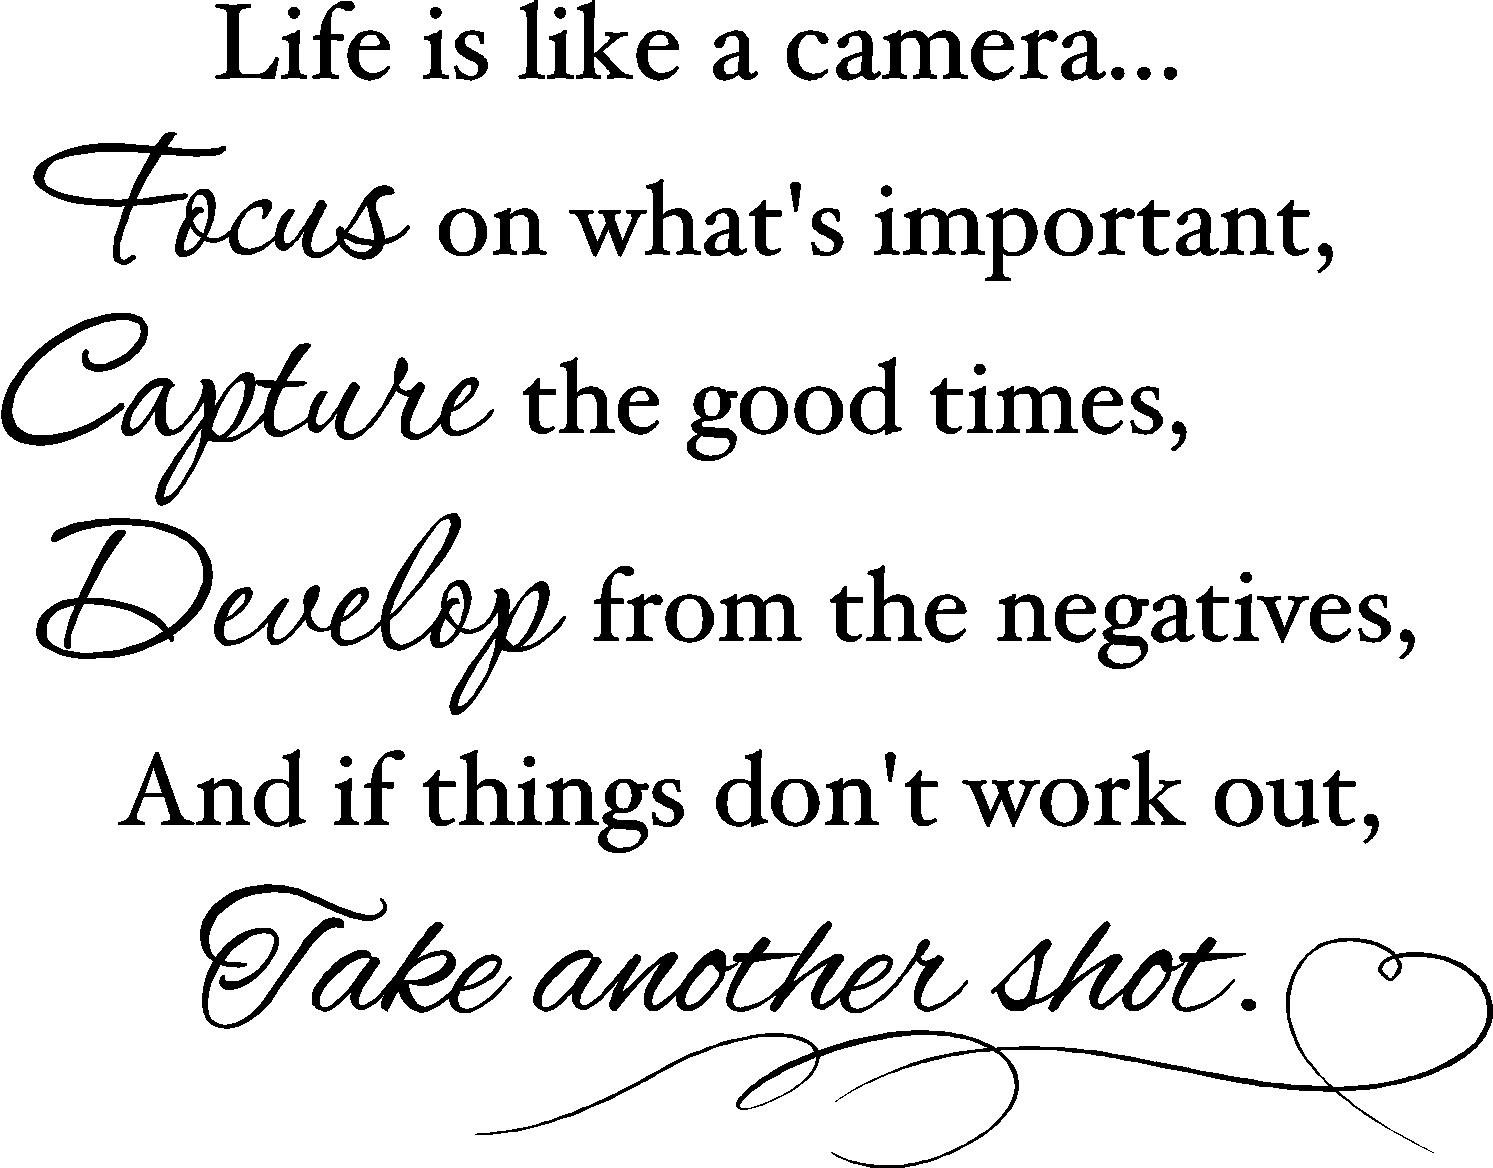 Amazon.com: Life is like a camera Focus on what\'s important ...